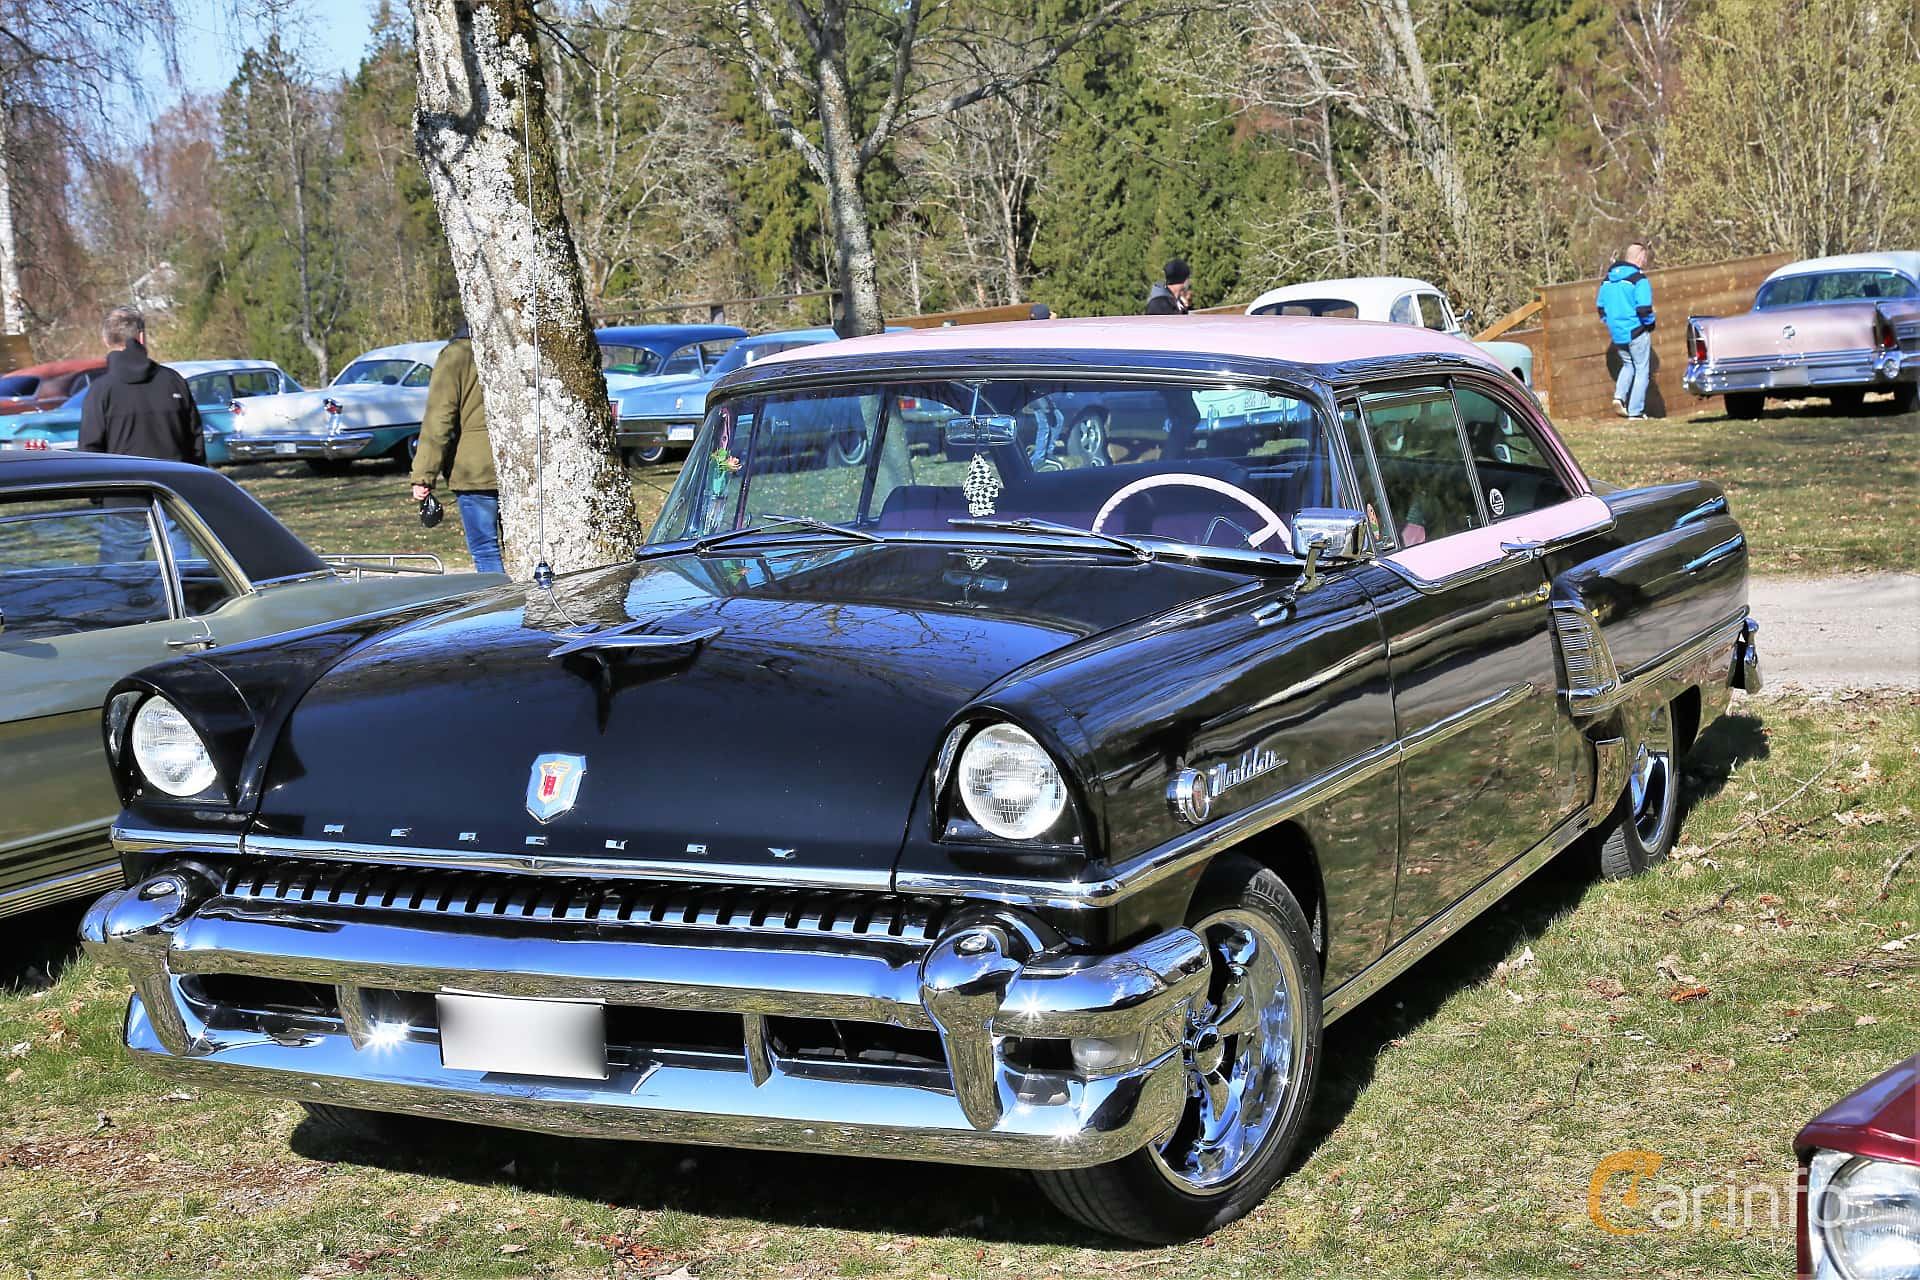 Mercury Montclair 2-door Hardtop 4.8 V8 Automatic, 198hp, 1955 at Uddevalla Veteranbilsmarknad Backamo, Ljungsk 2019